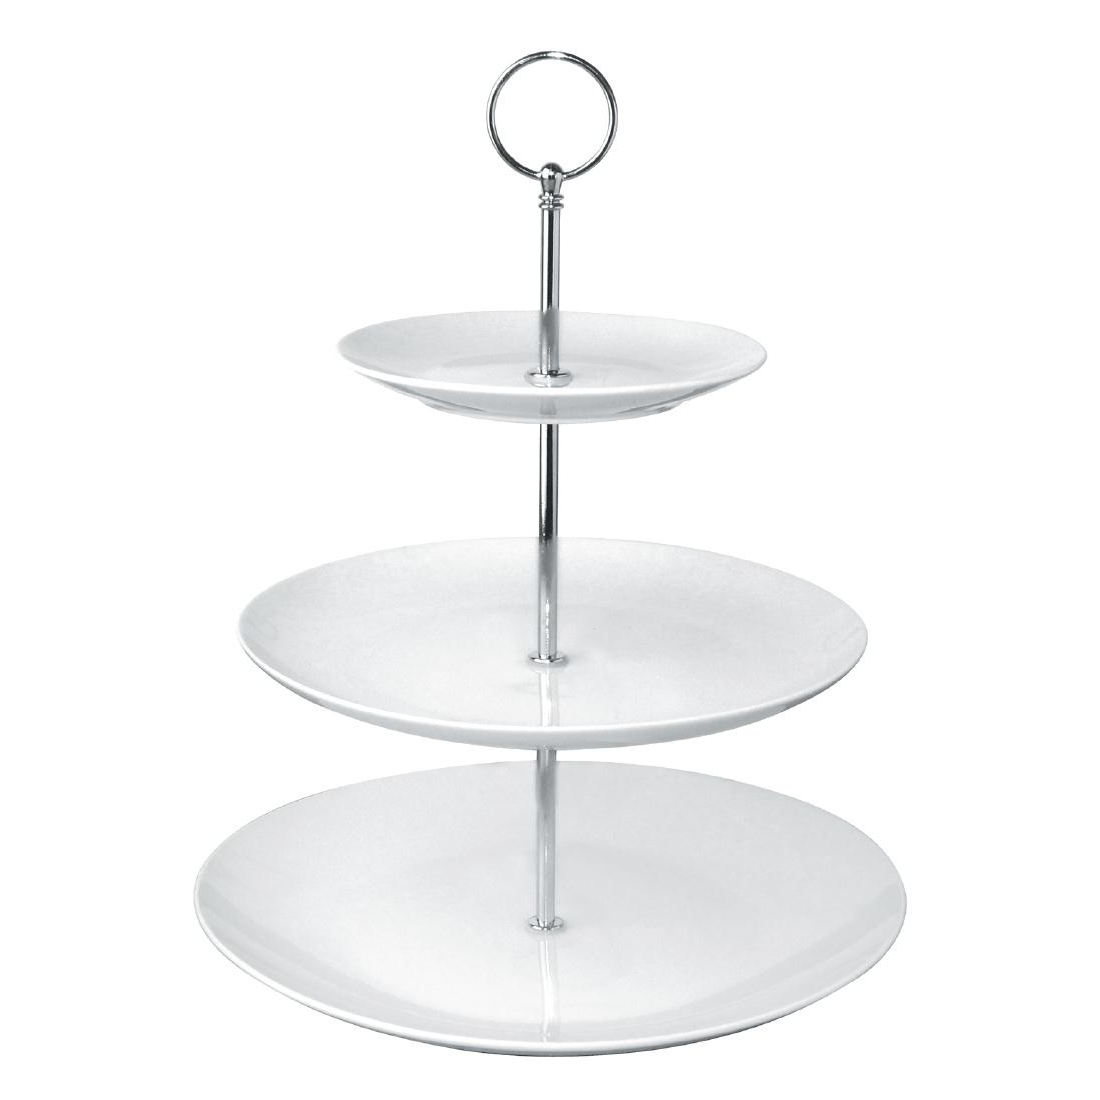 Olympia 3 Tier Afternoon Tea Cake Stand by Olympia-GG881 - Smart Hospitality Supplies  sc 1 st  Smart Hospitality Supplies & Olympia 3 Tier Afternoon Tea Cake Stand by Olympia-GG881 - Smart ...